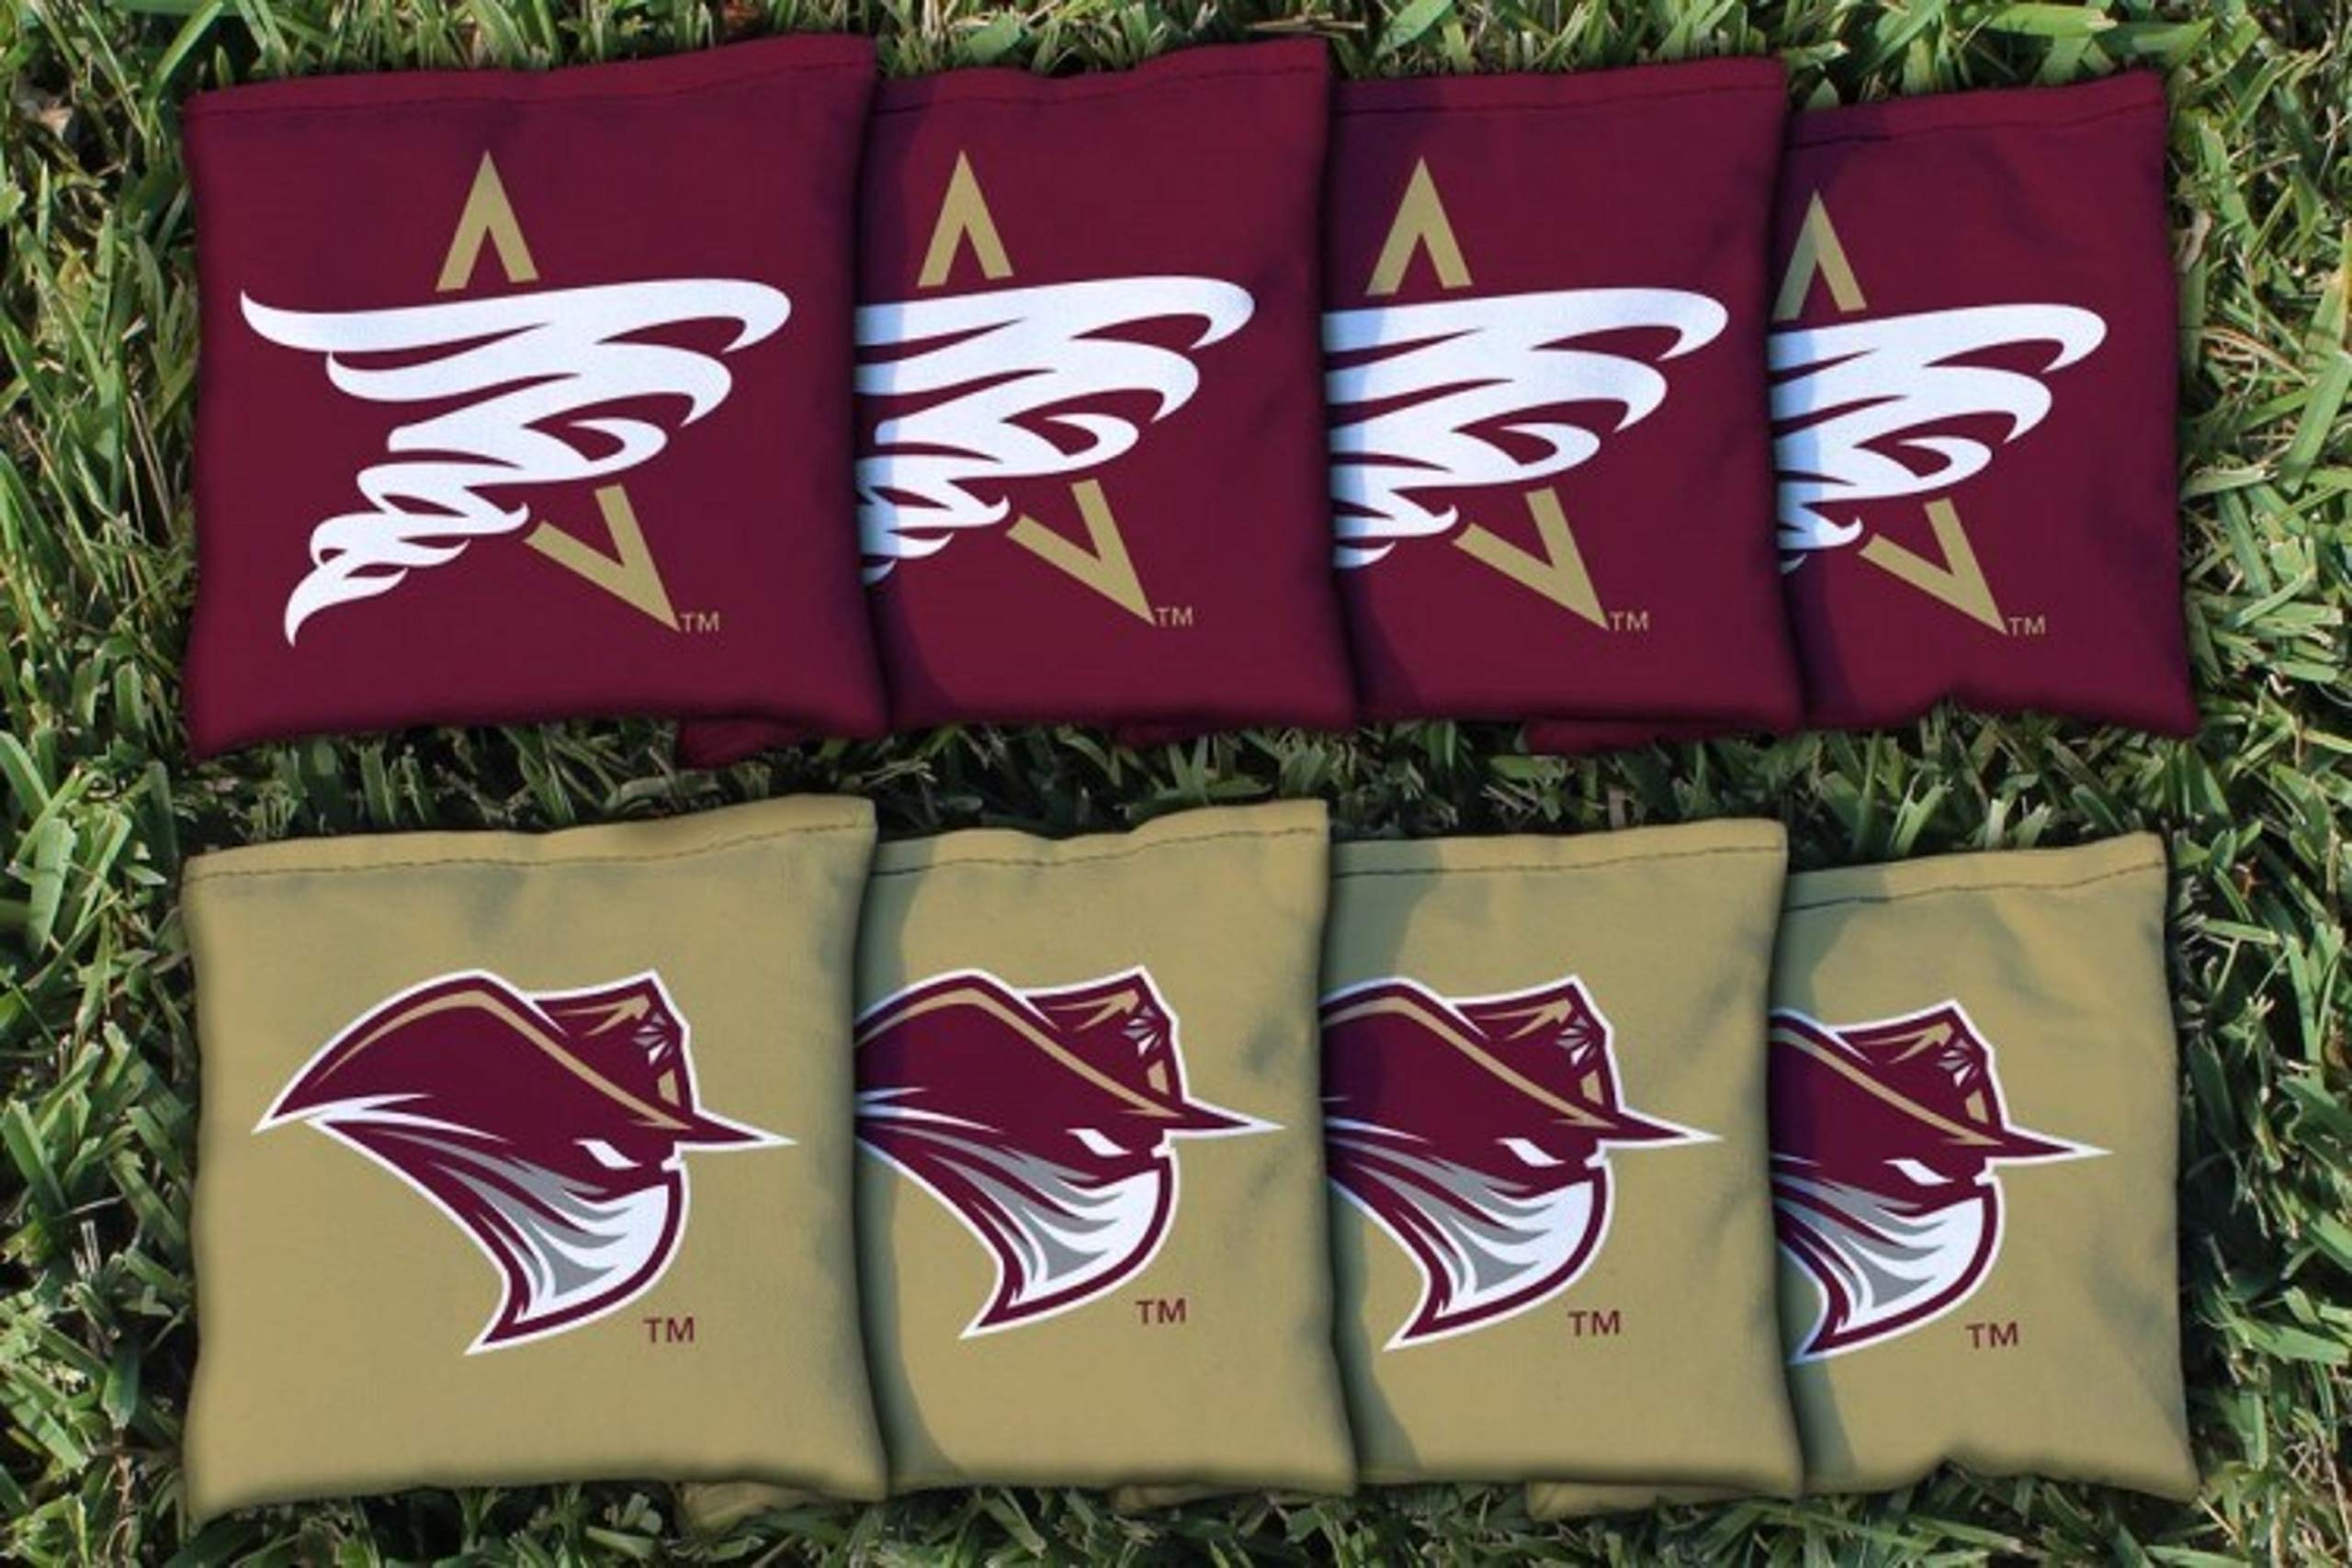 Victory Tailgate NCAA Collegiate Regulation Cornhole Game Bag Set (8 Bags Included, Corn-Filled) - Texas A&M - International Dust Devils by Victory Tailgate